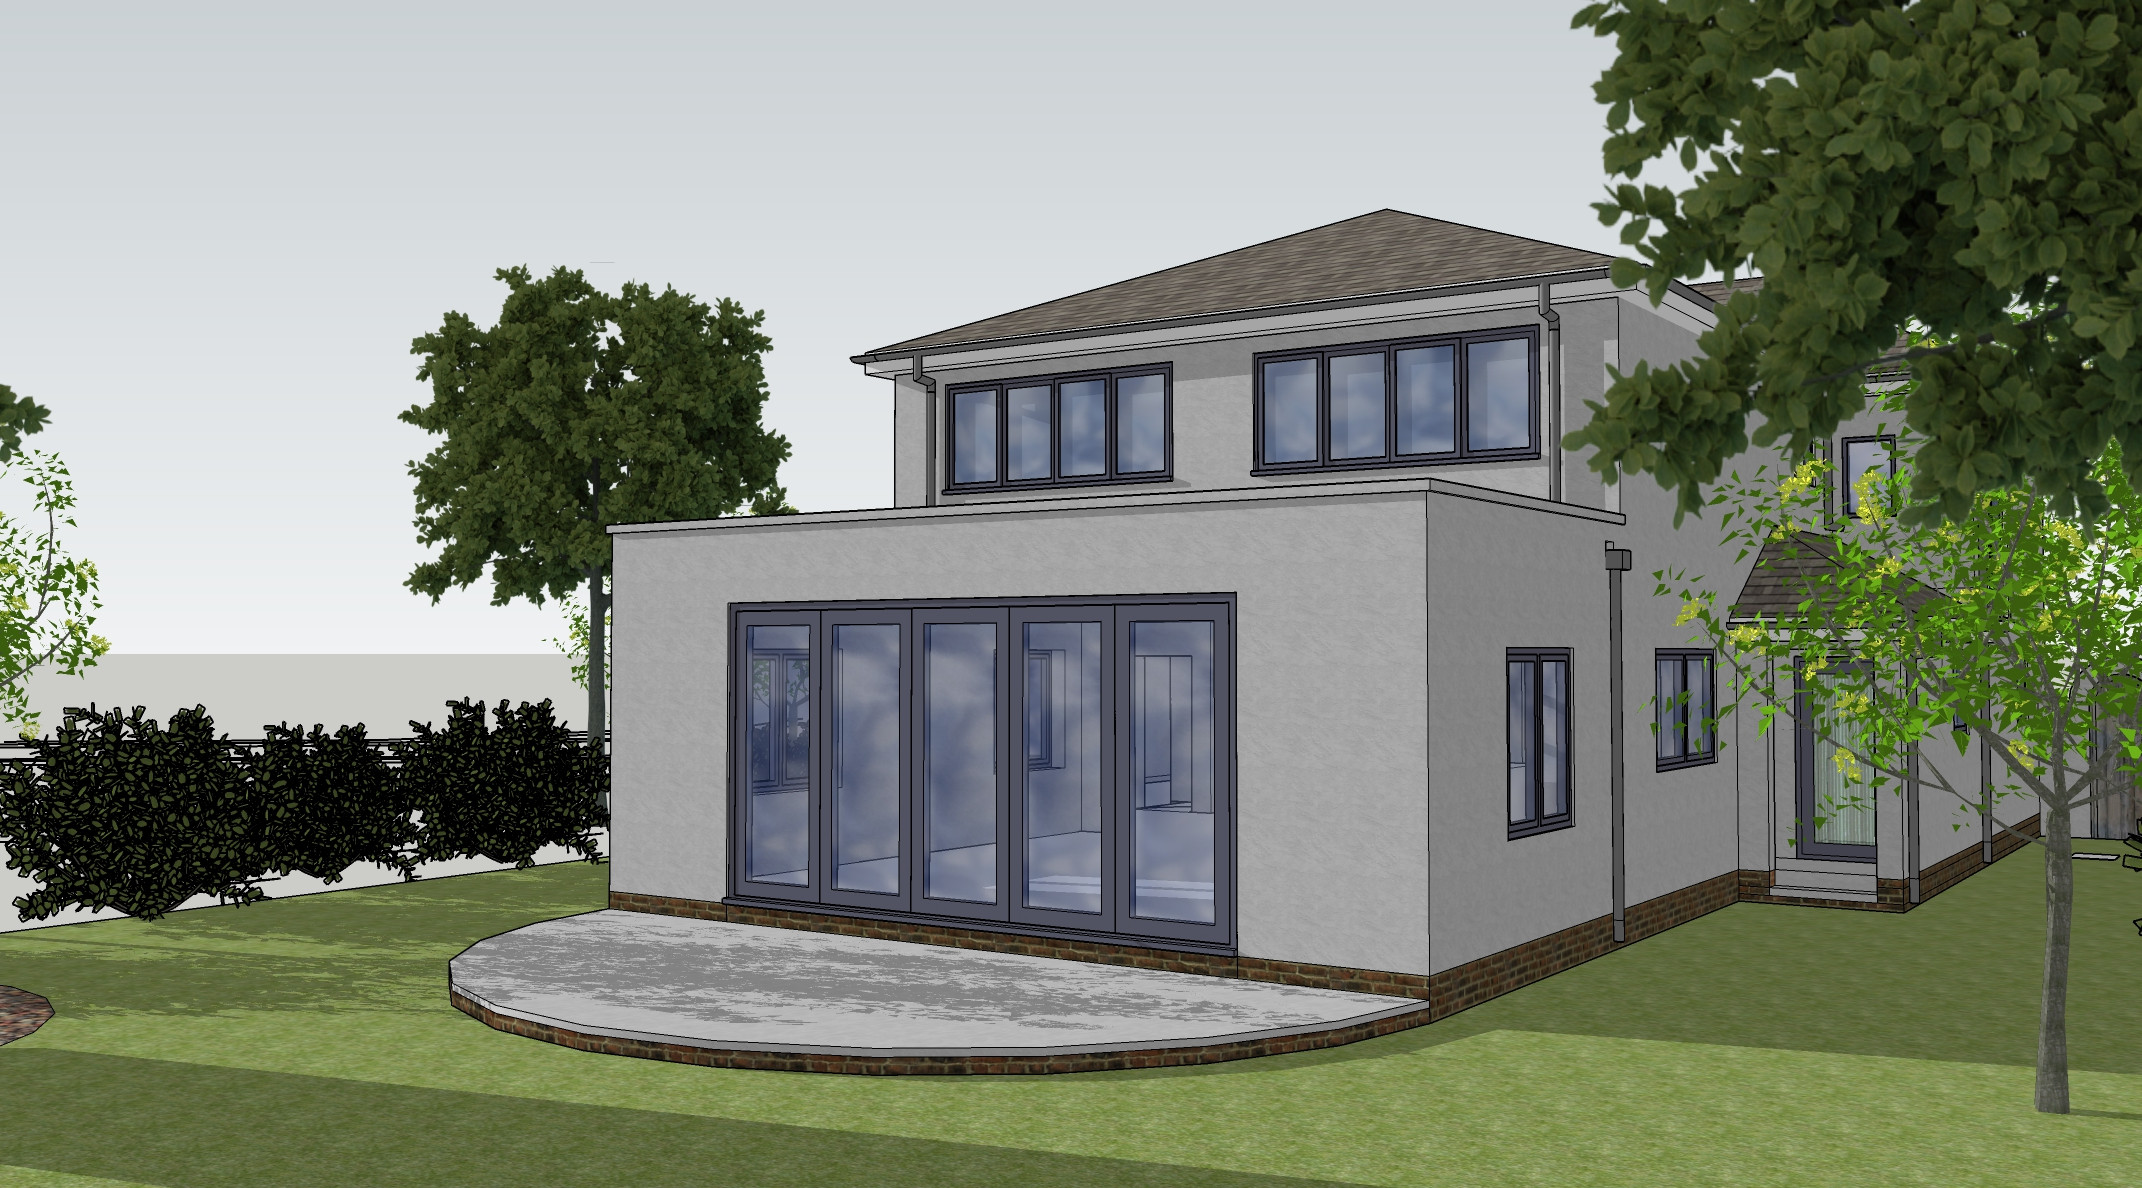 Designs for House Redevelopment